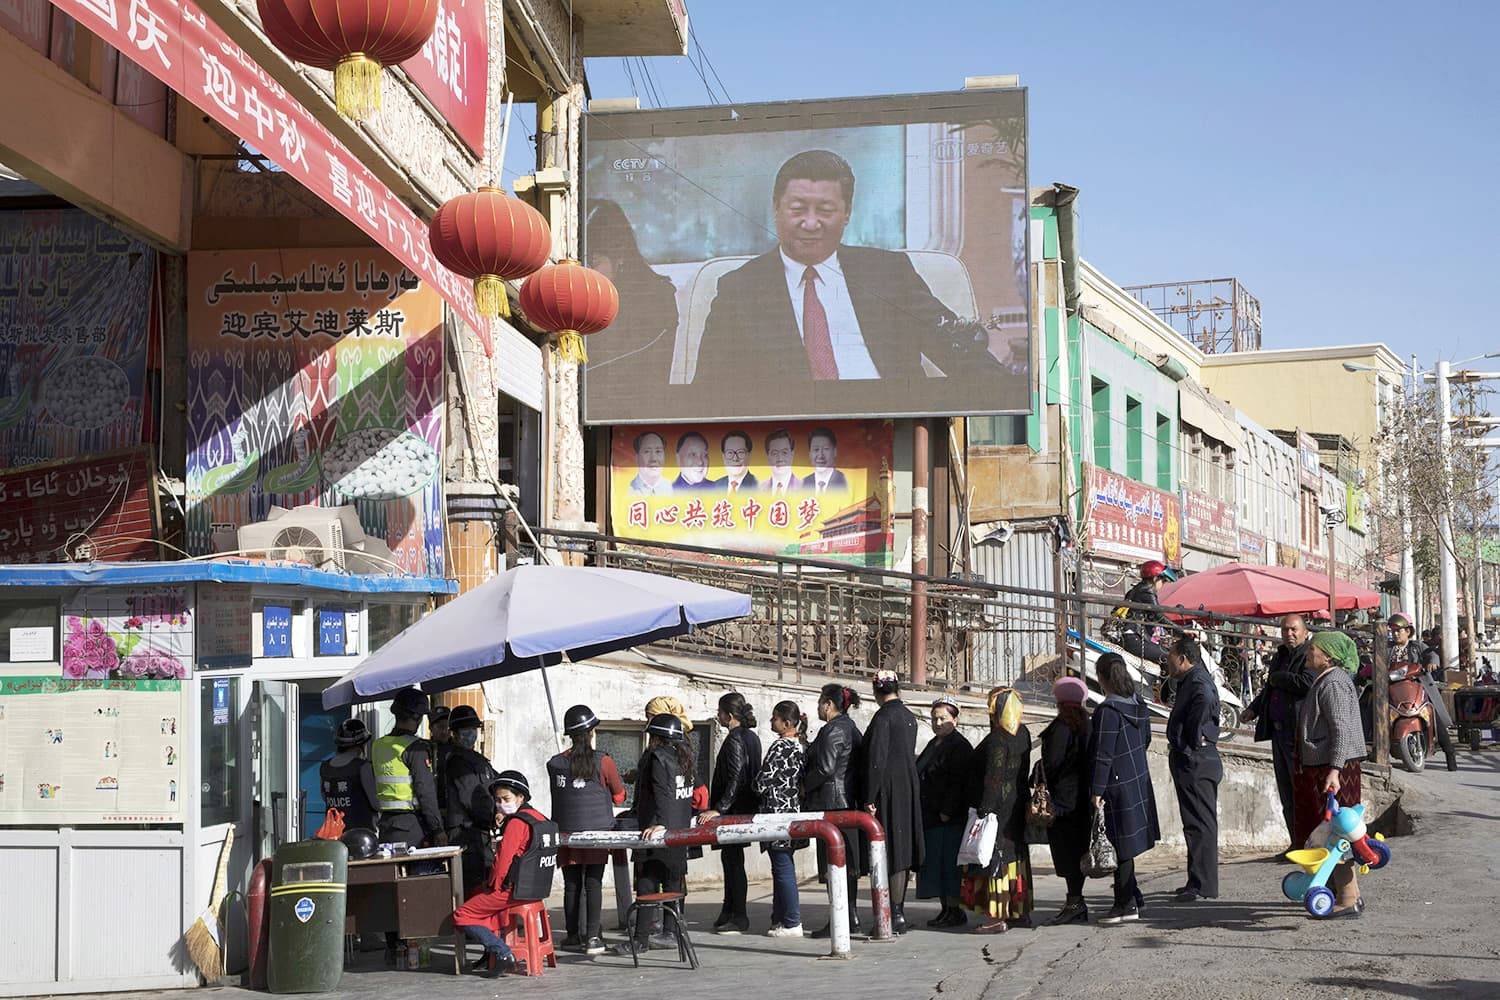 FILE - In this Nov. 3, 2017, file photo, residents walk through a security checkpoint into the Hotan Bazaar where a screen shows Chinese President Xi Jinping in Hotan in western China's Xinjiang region.  —AP